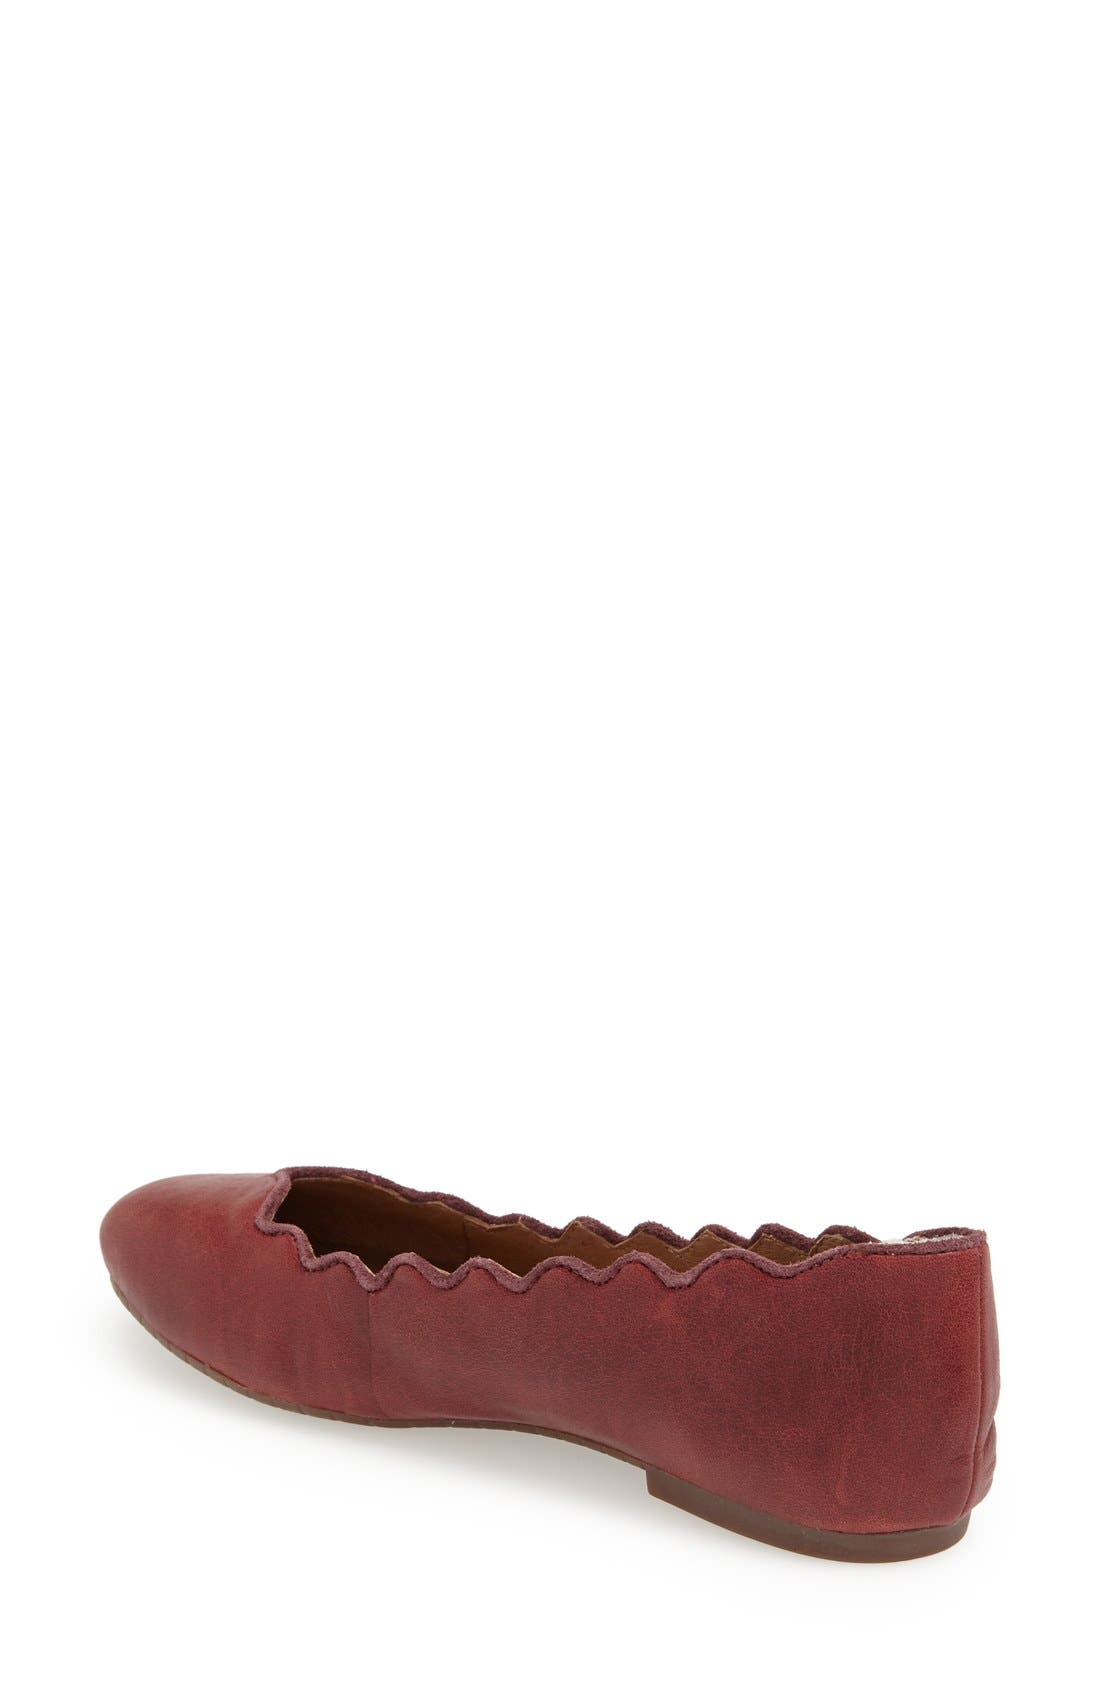 Alternate Image 2  - UGG® Australia 'Chandra' Scalloped Flat (Women)